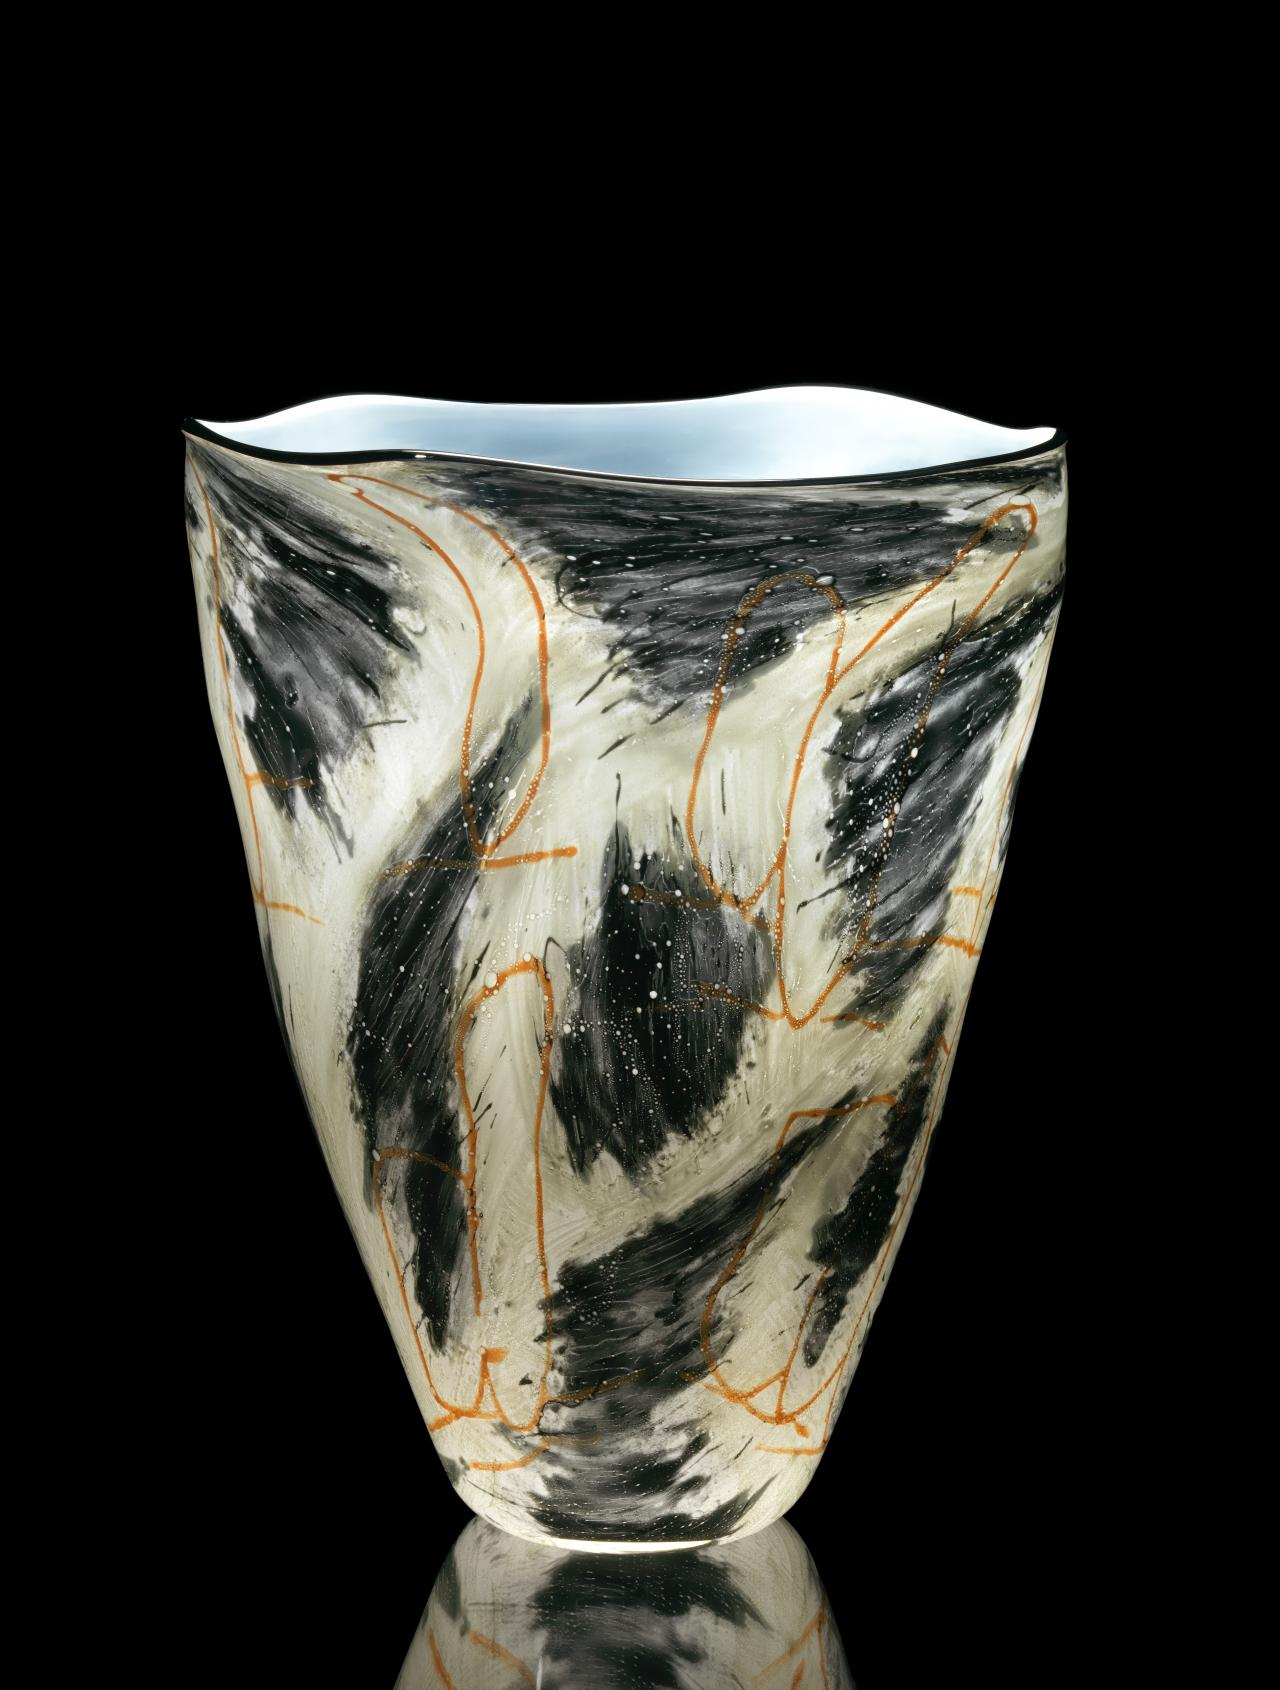 Clouded journey, vase